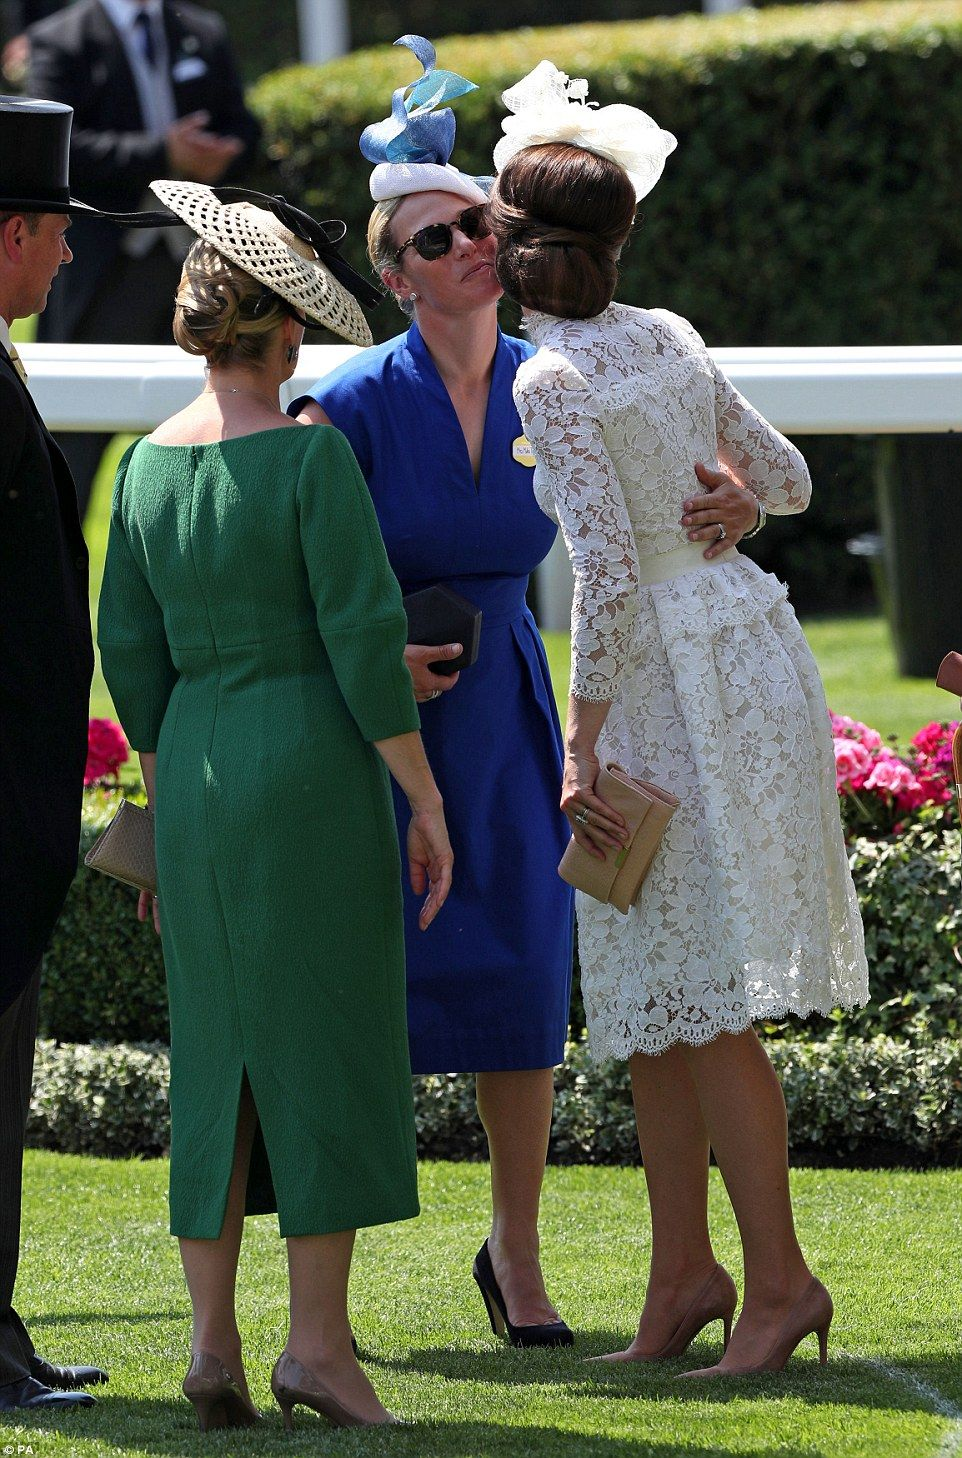 As Royal Ascot gets under way with temperatures in Berkshire expected to hit 28C (82F) at the course, organisers are considering relaxing the strict dress codes for punters.